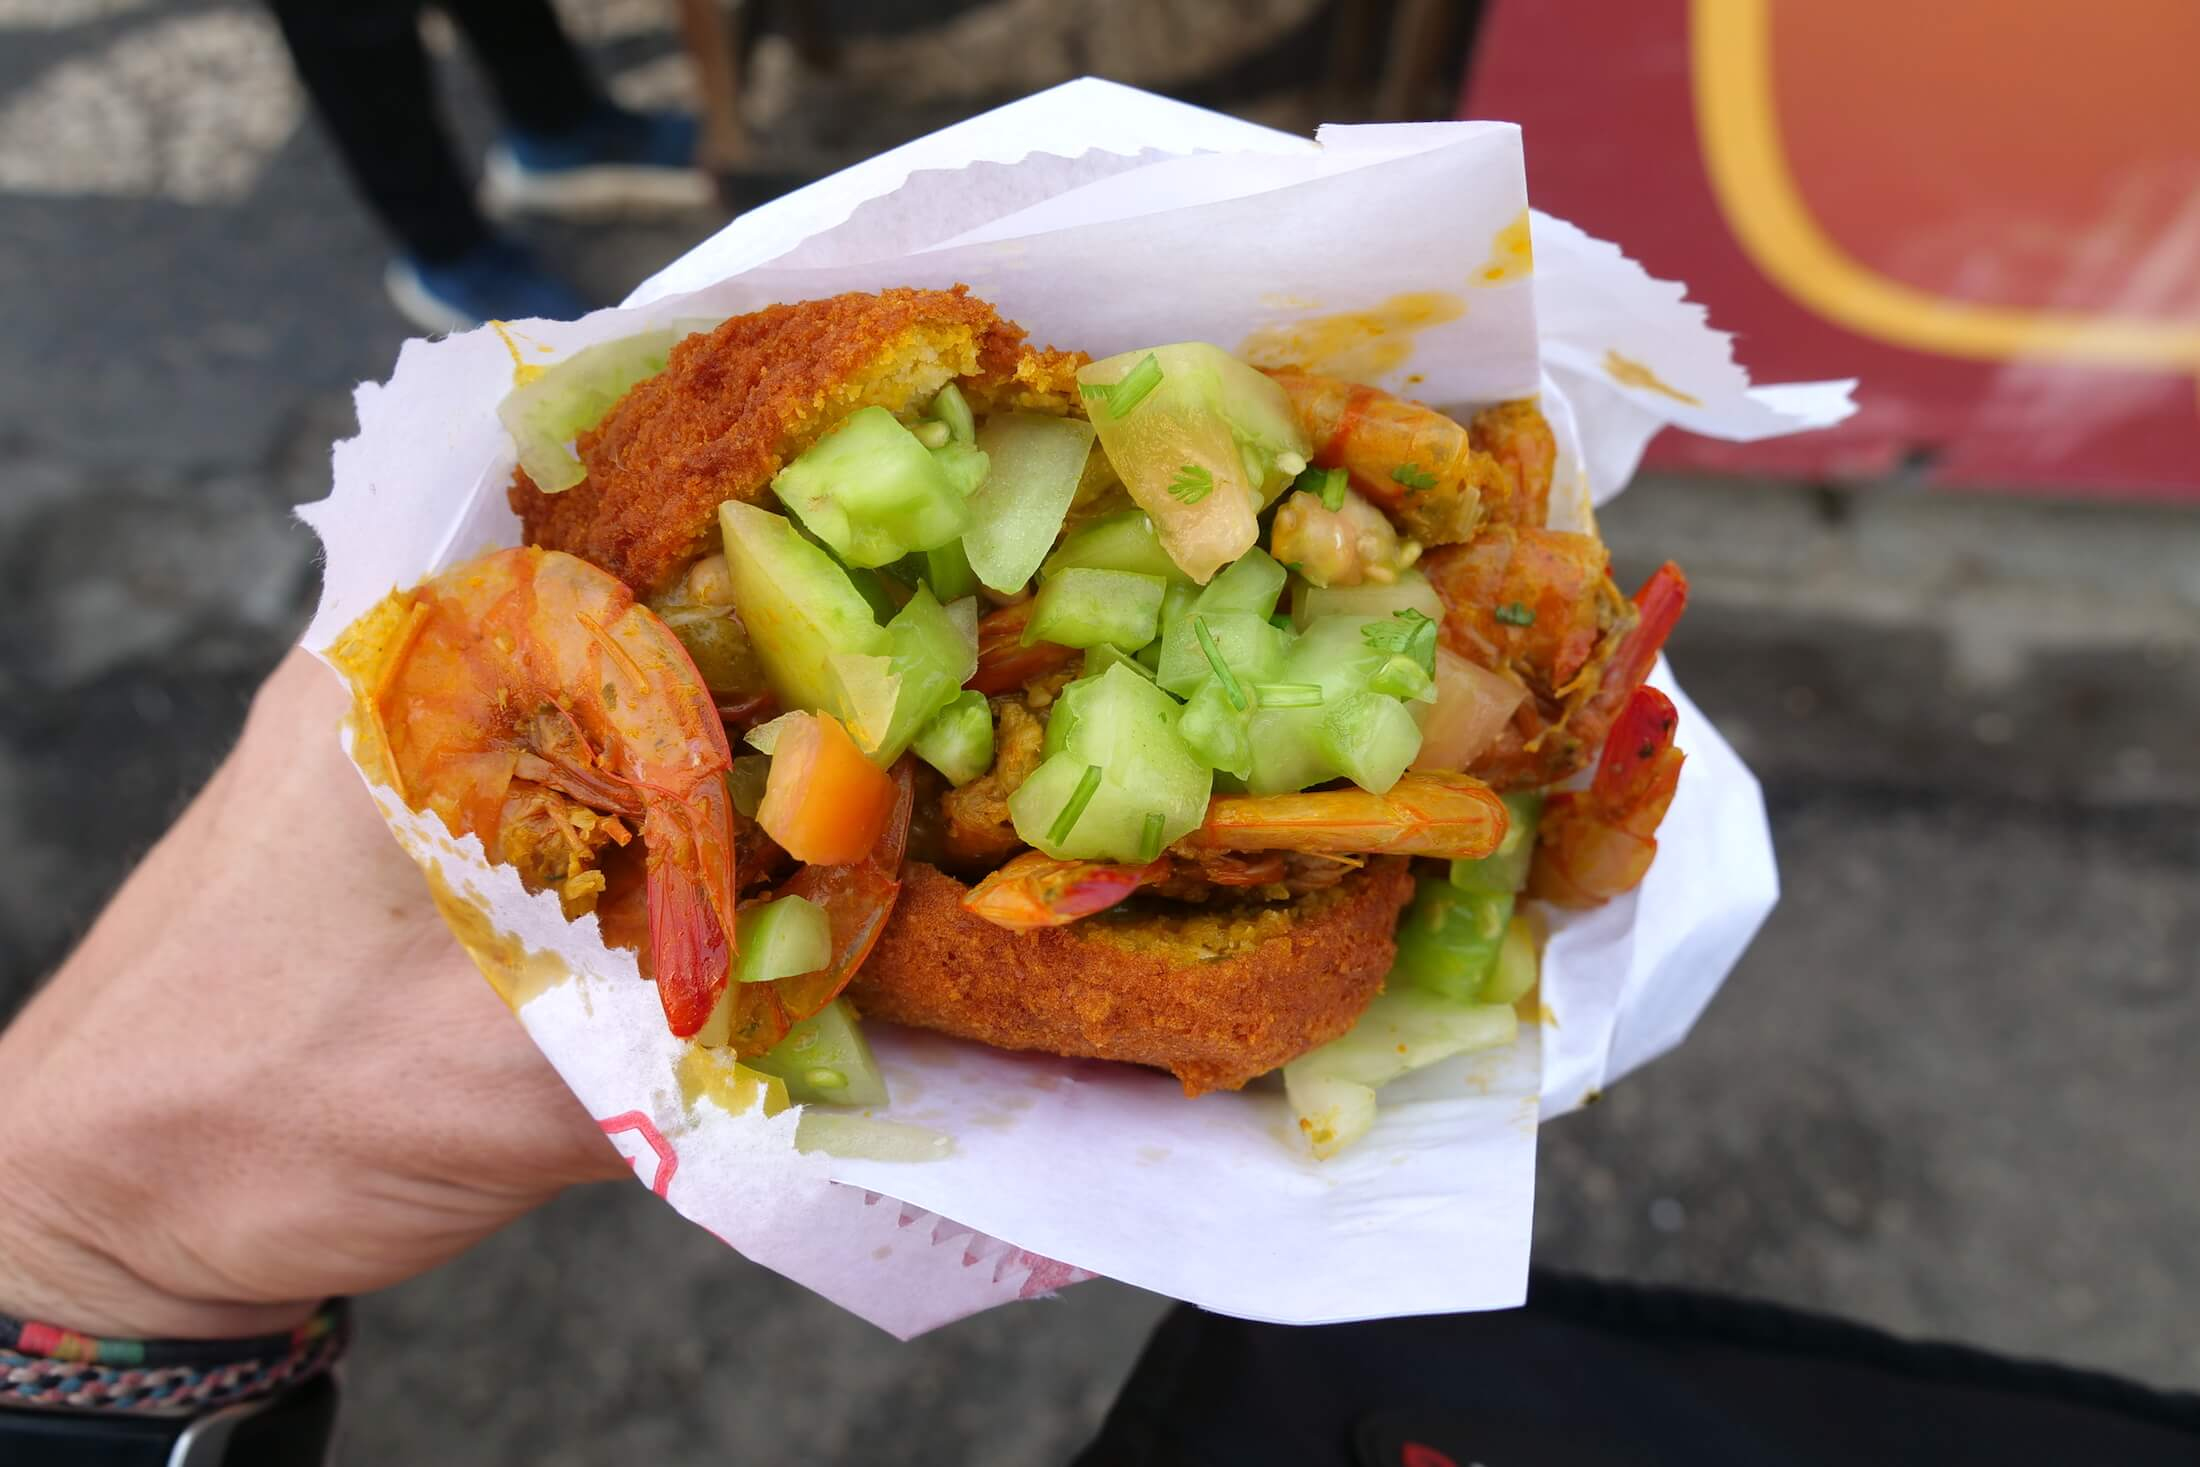 If you visit Salvador, there's no way you can leave without trying Acarajé